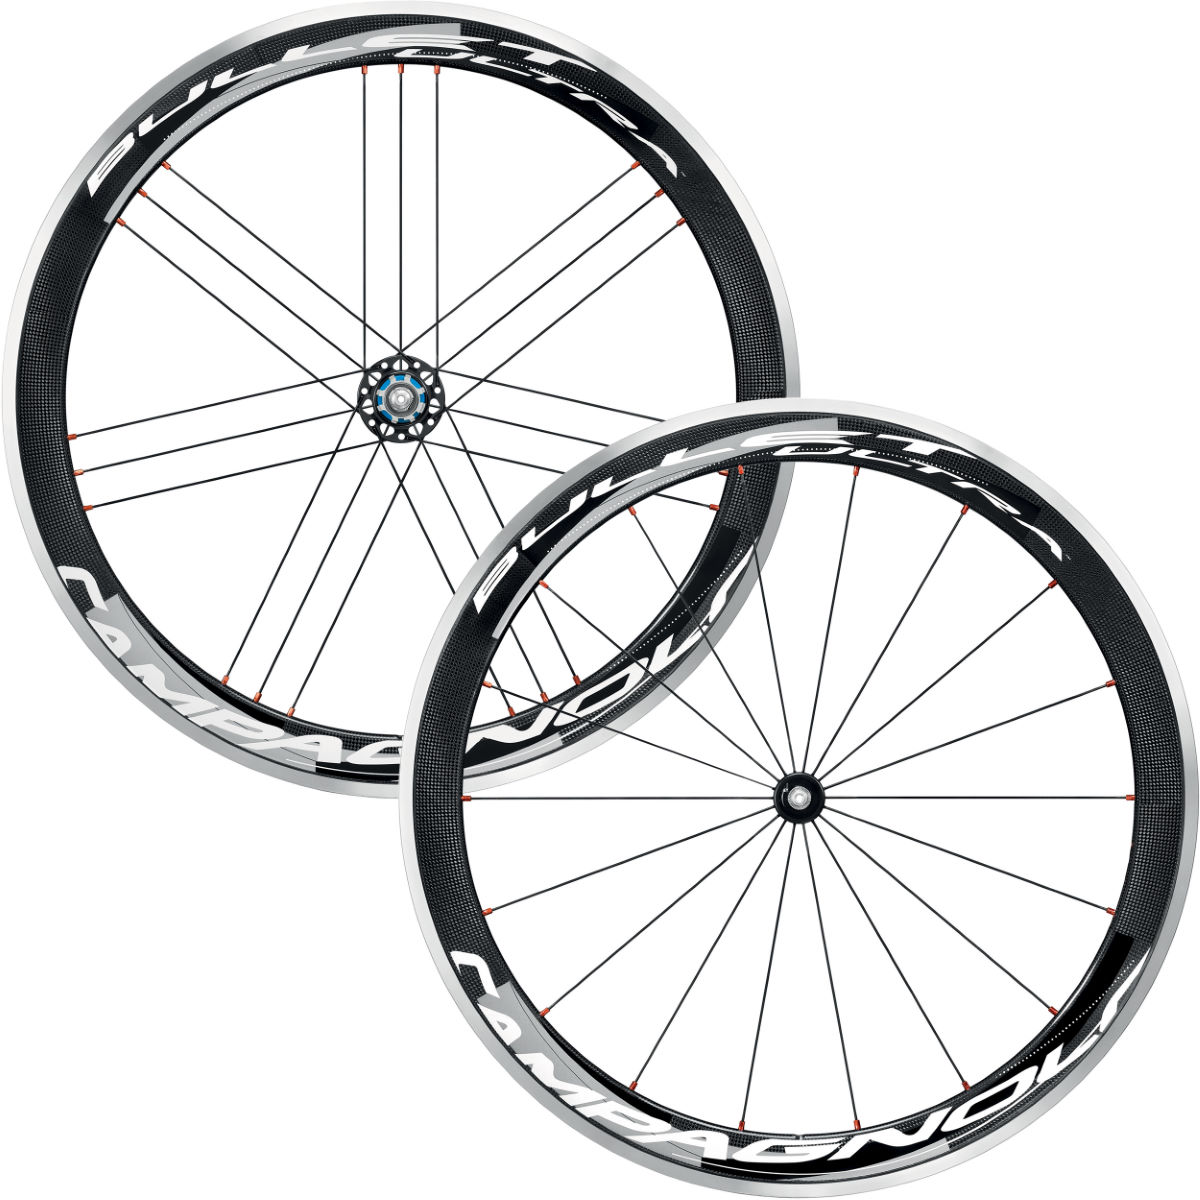 Paires de roues Campagnolo Bullet Ultra 50 Cult Dark Label (carbone) - Campagnolo Freehub Black/White/Grey Roues performance